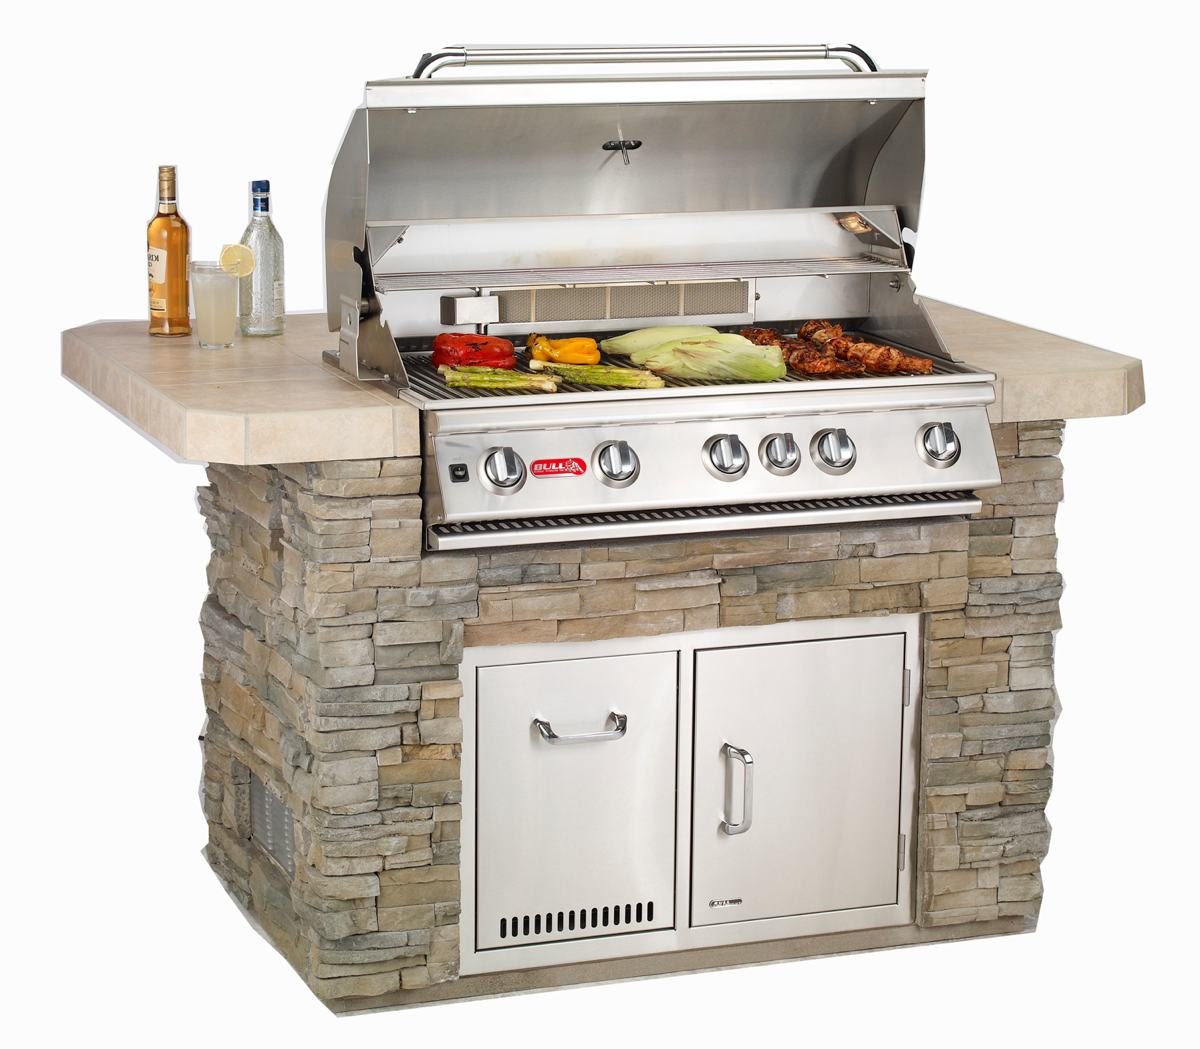 Bull outdoor products bbq 57569 brahma 90 000 btu grill Outdoor kitchen equipment